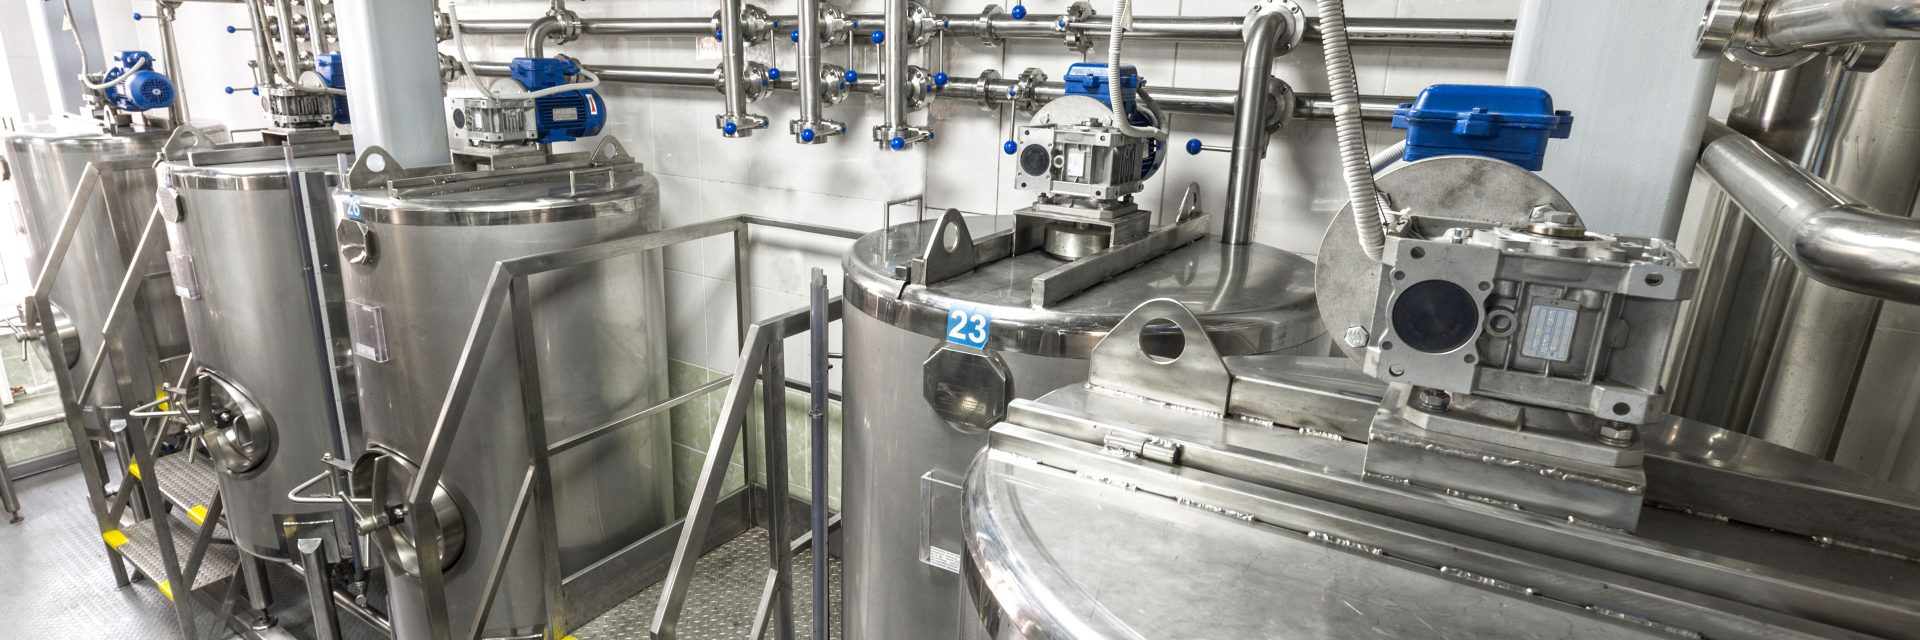 Stainless steel liquid mixing equipment, an important scale up consideration